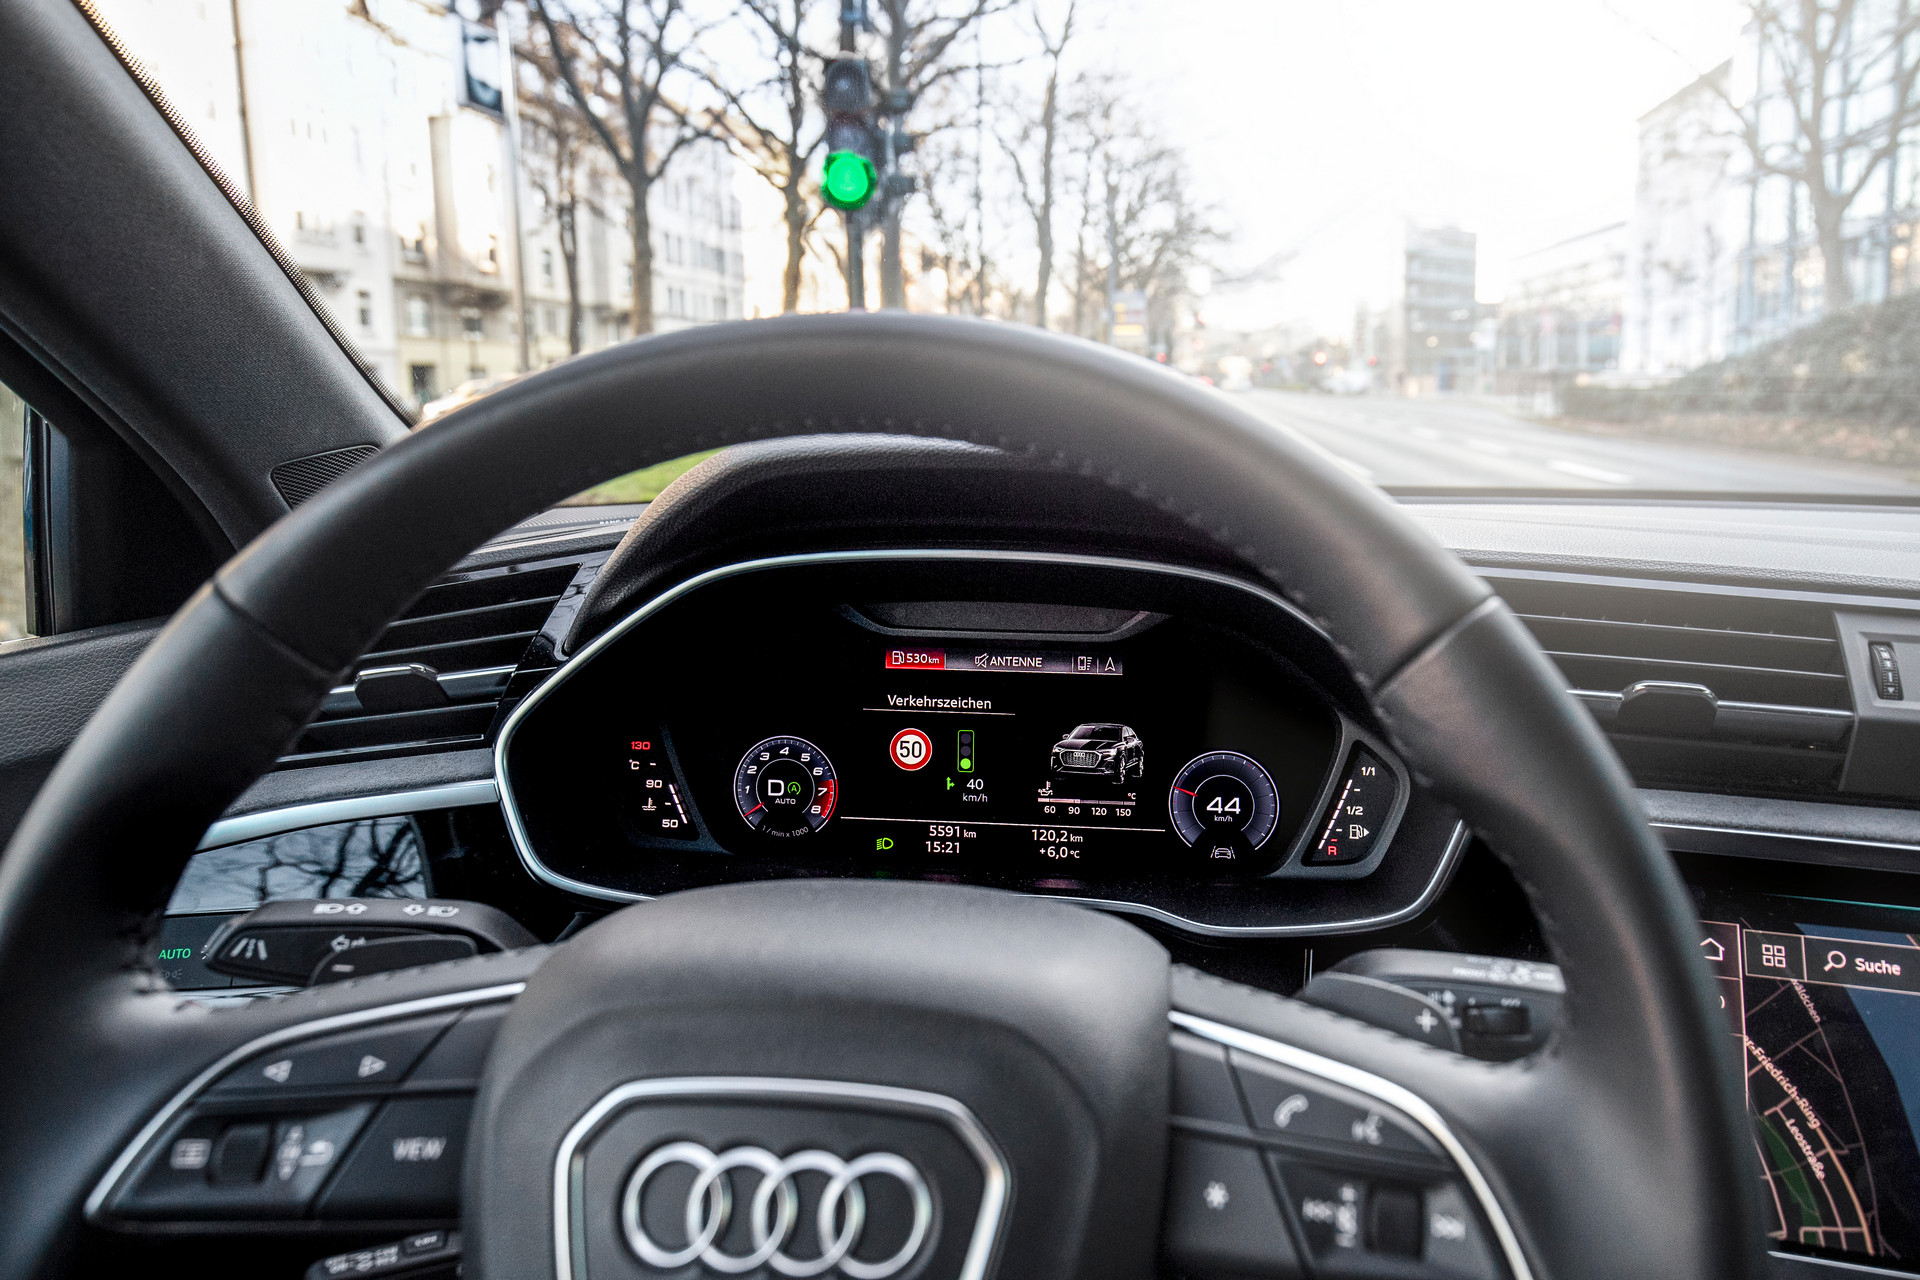 Audi Traffic Light Information